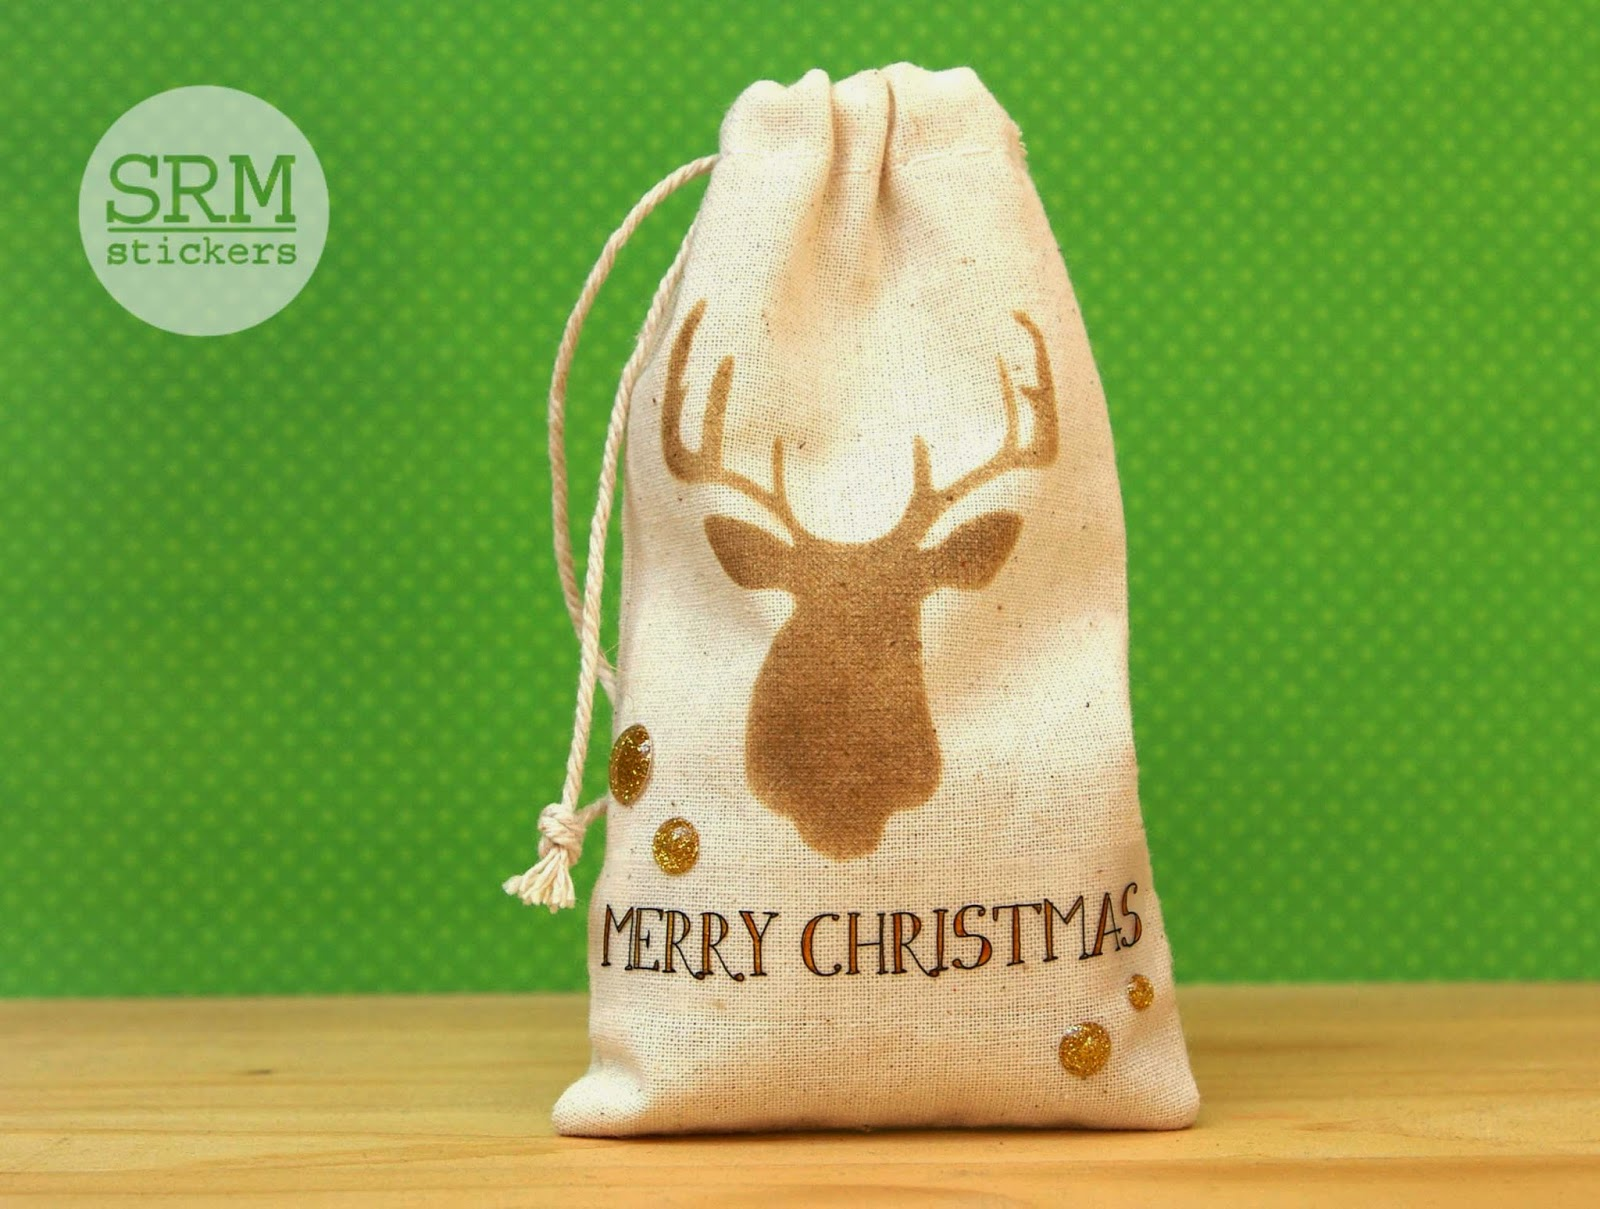 SRM Stickers Blog - Christmas Gift Bags by Lorena - #muslinbags #christmas #giftbag #stickers #stencilvinyl #diy